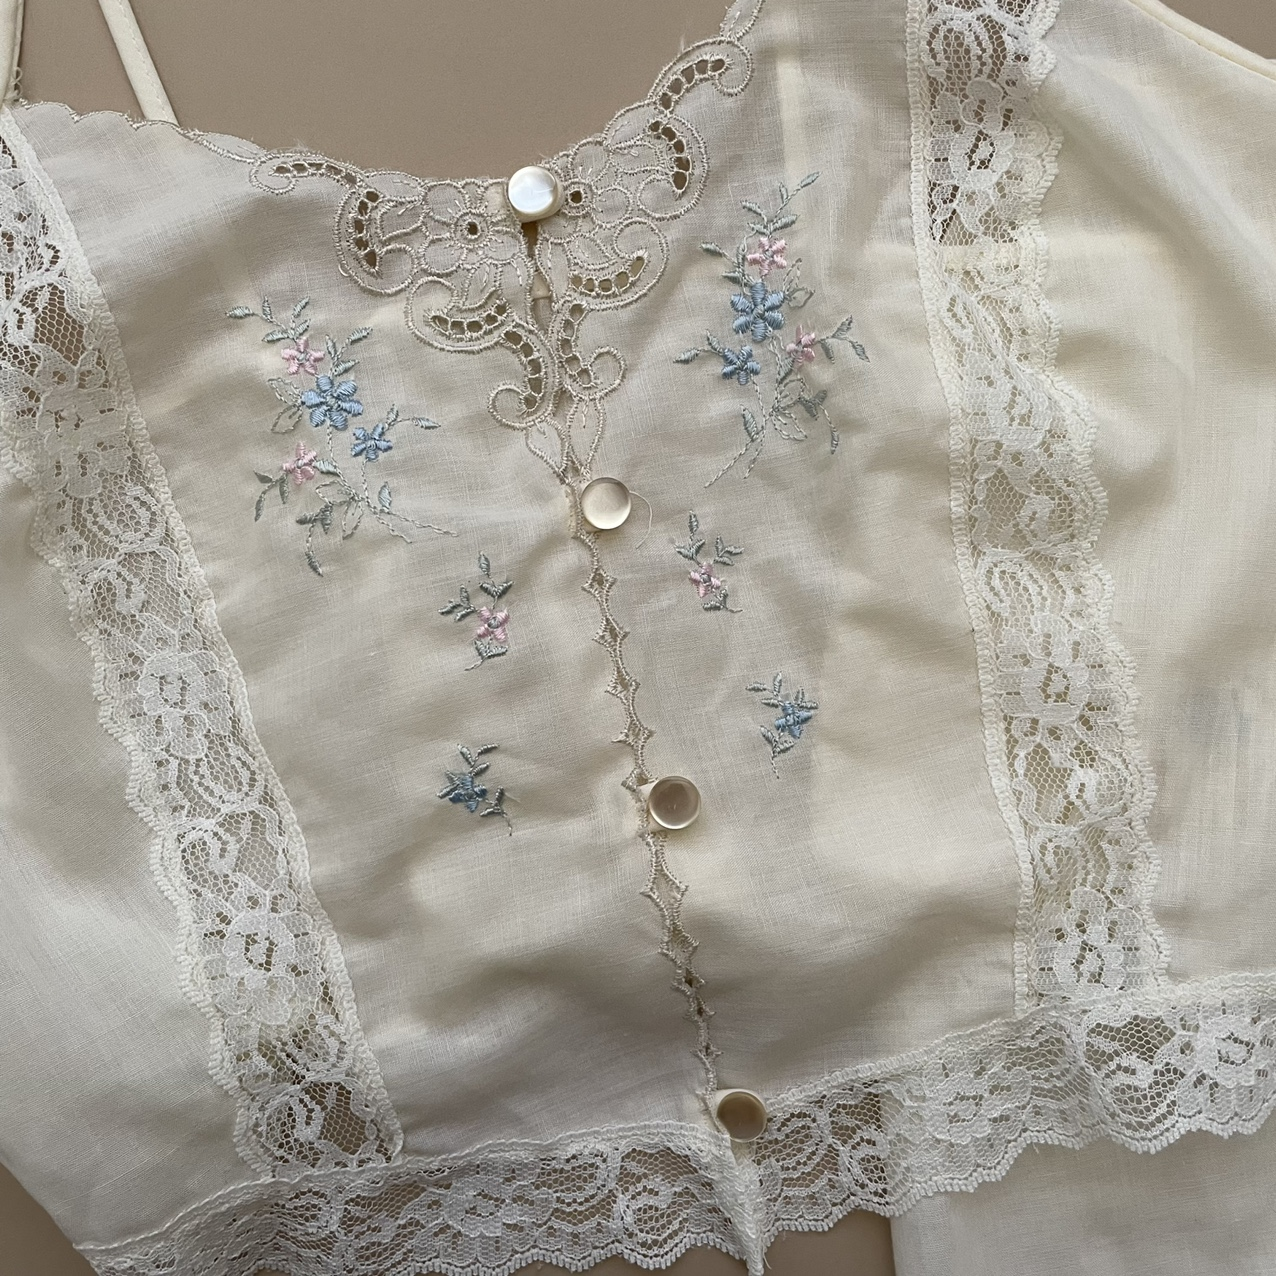 Product Image 1 - Vintage lace floral embroidered cami